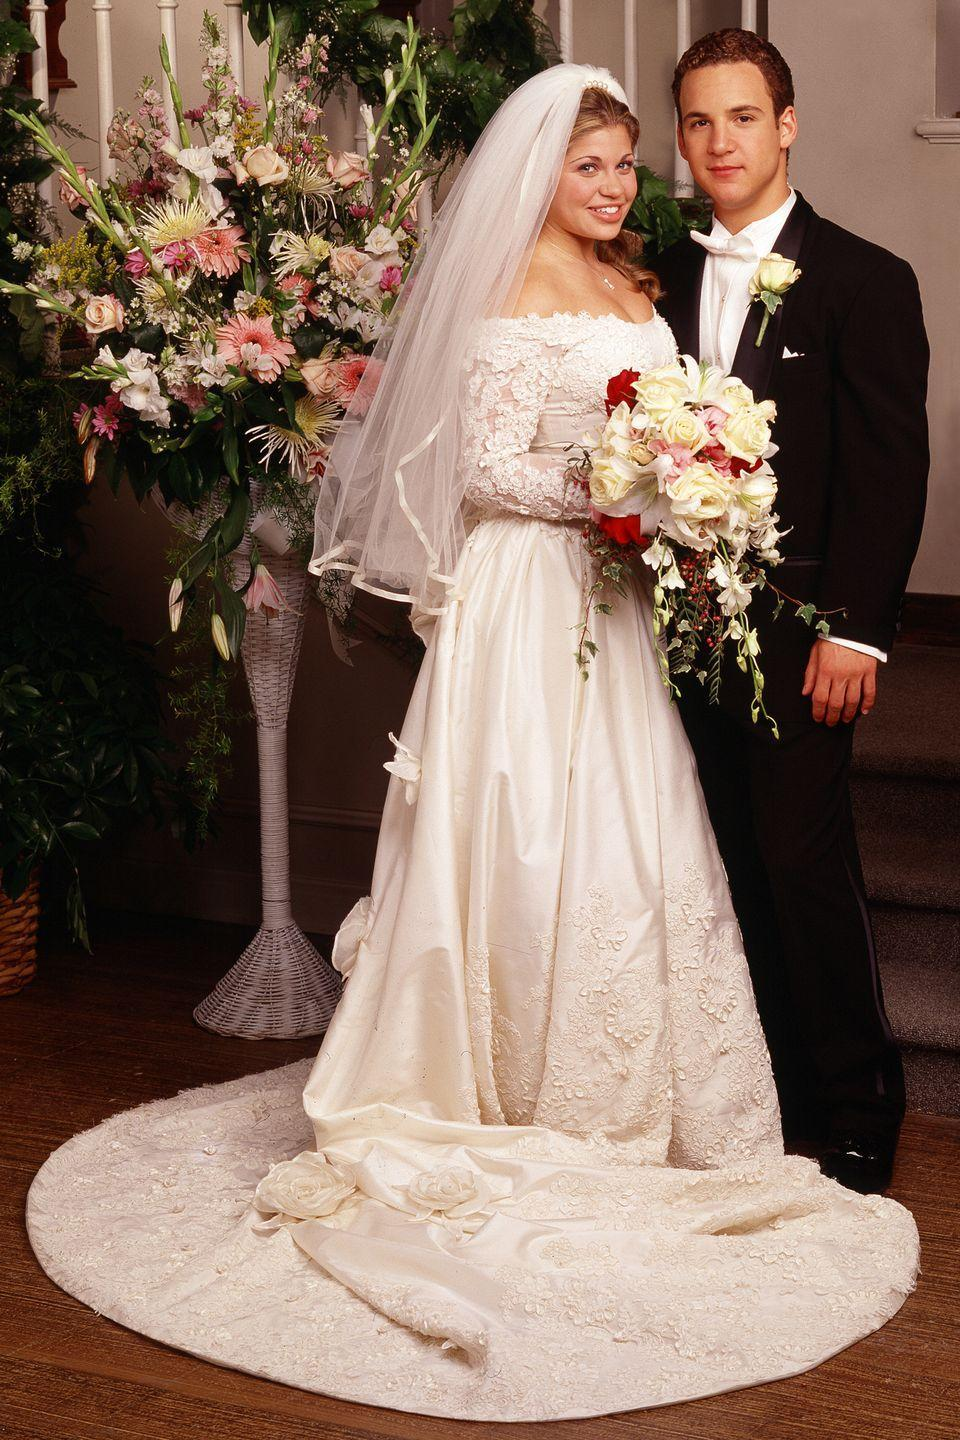 <p>Cory and Topanga seemed destined for each other when they met in Mr. Feeney's classroom in season 1, when Topanga first kissed him. They tied the knot in season 7, and she wore a lacy, long-sleeve, off-the-shoulder gown with a train. </p>